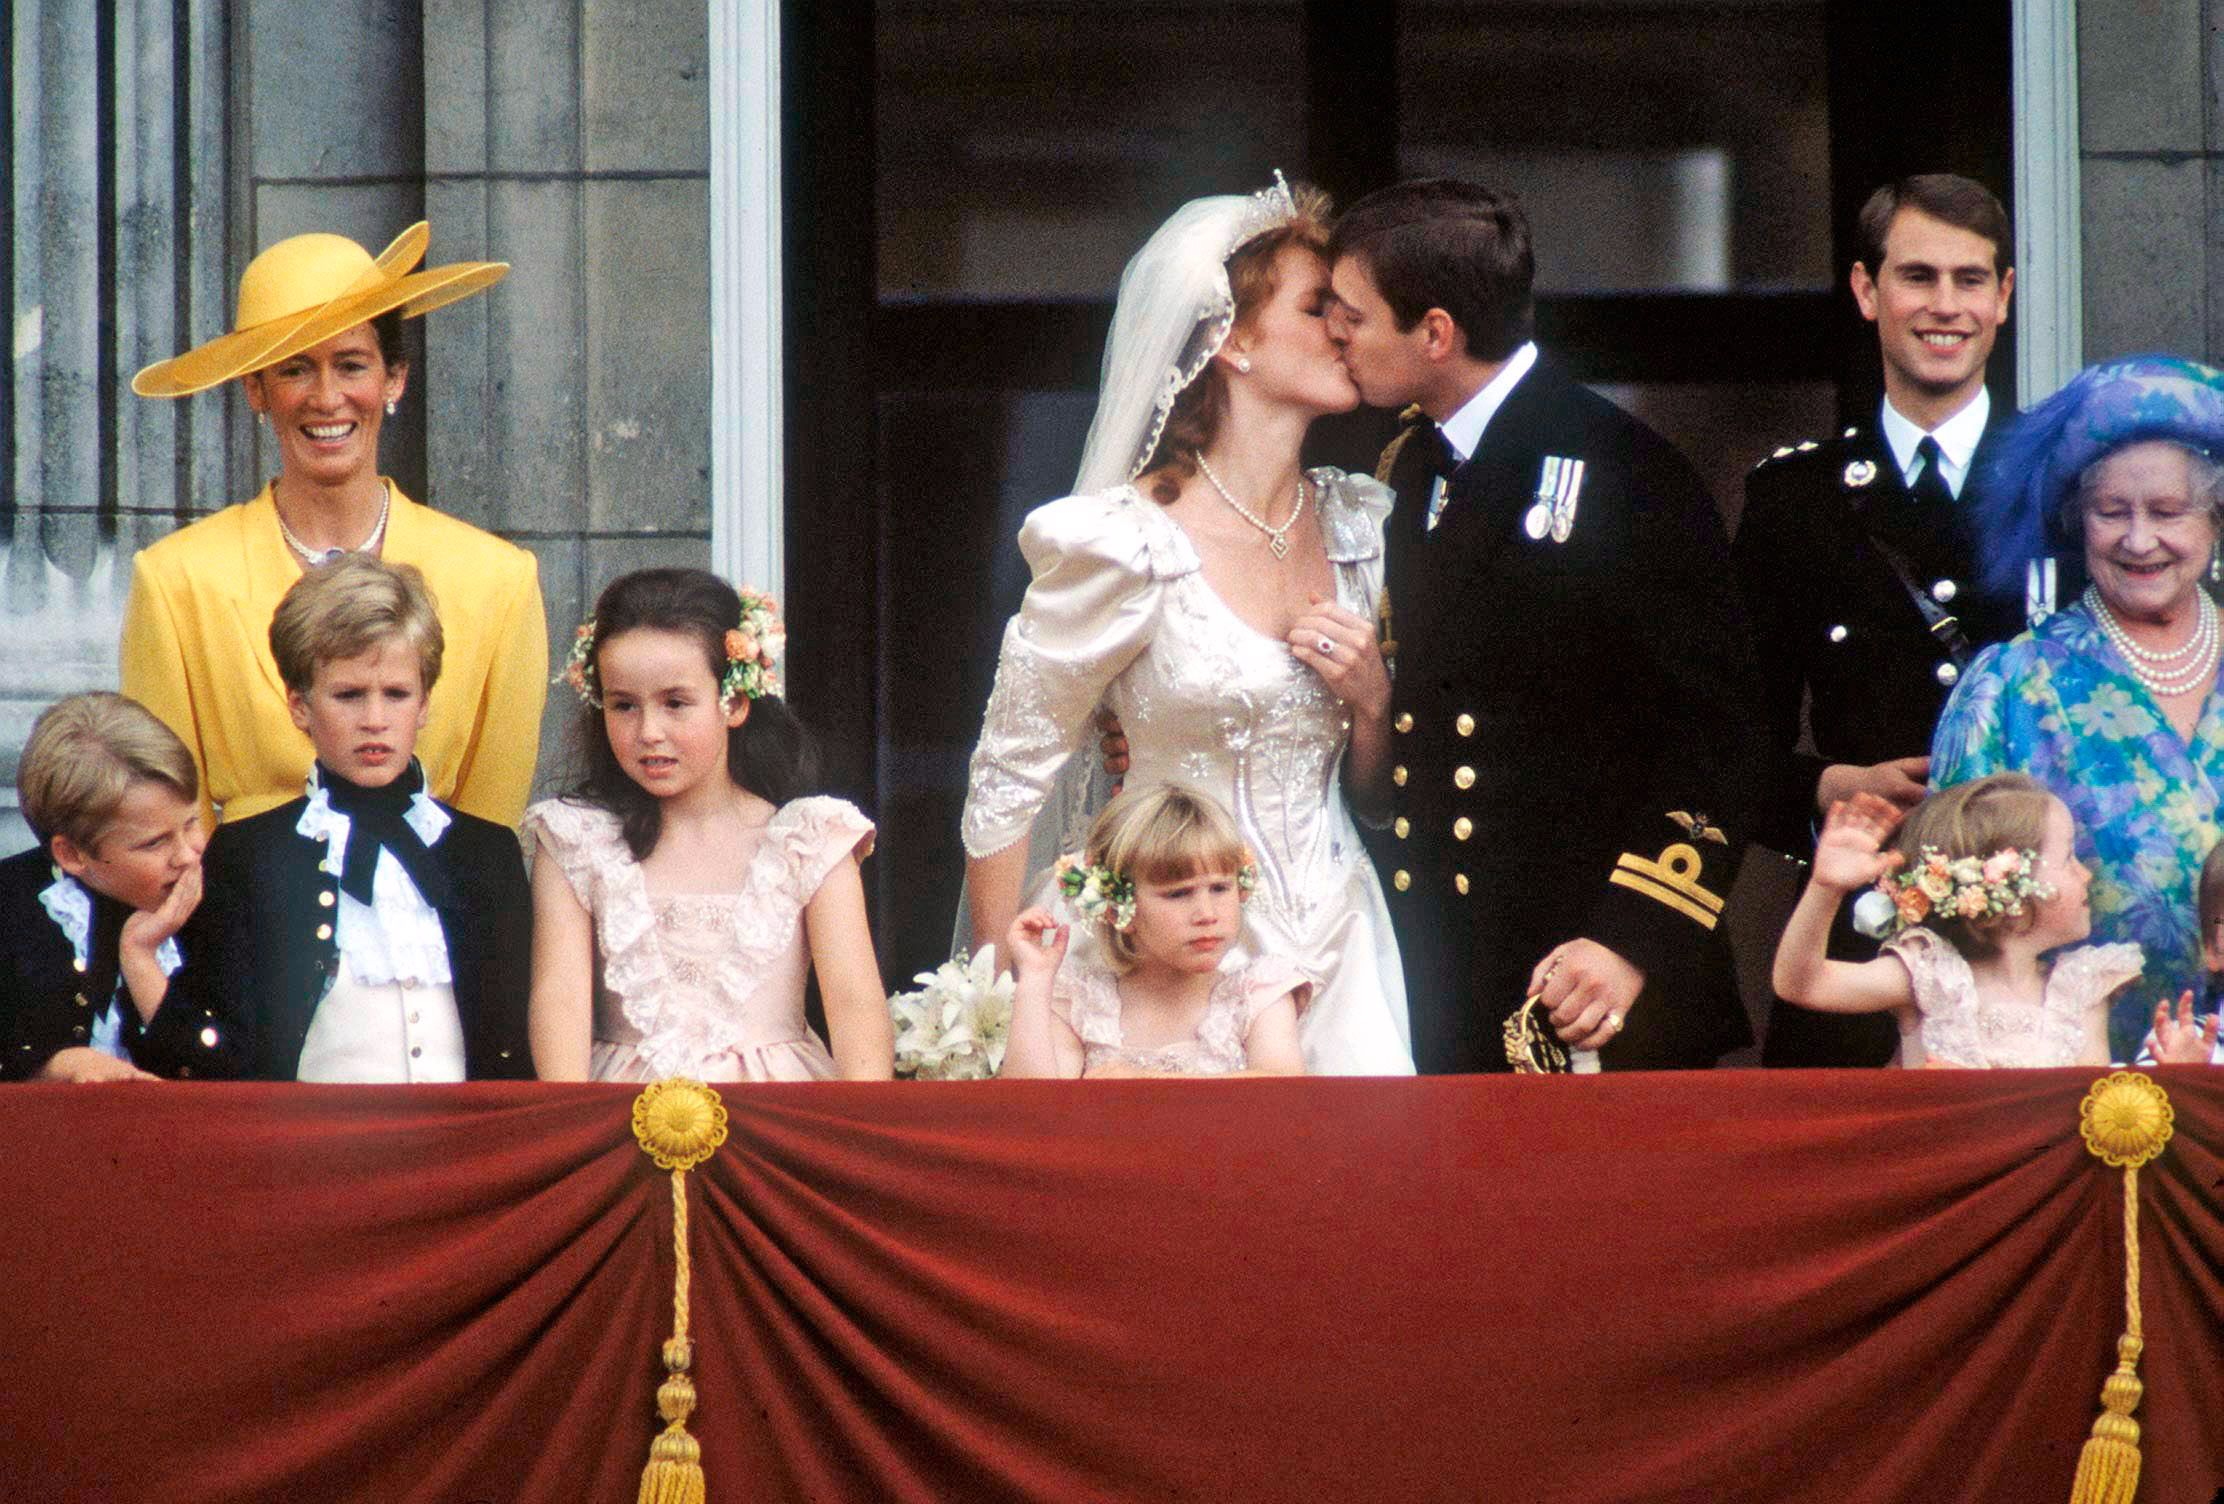 The Evolution of the Royal Wedding Kiss Wedding kiss